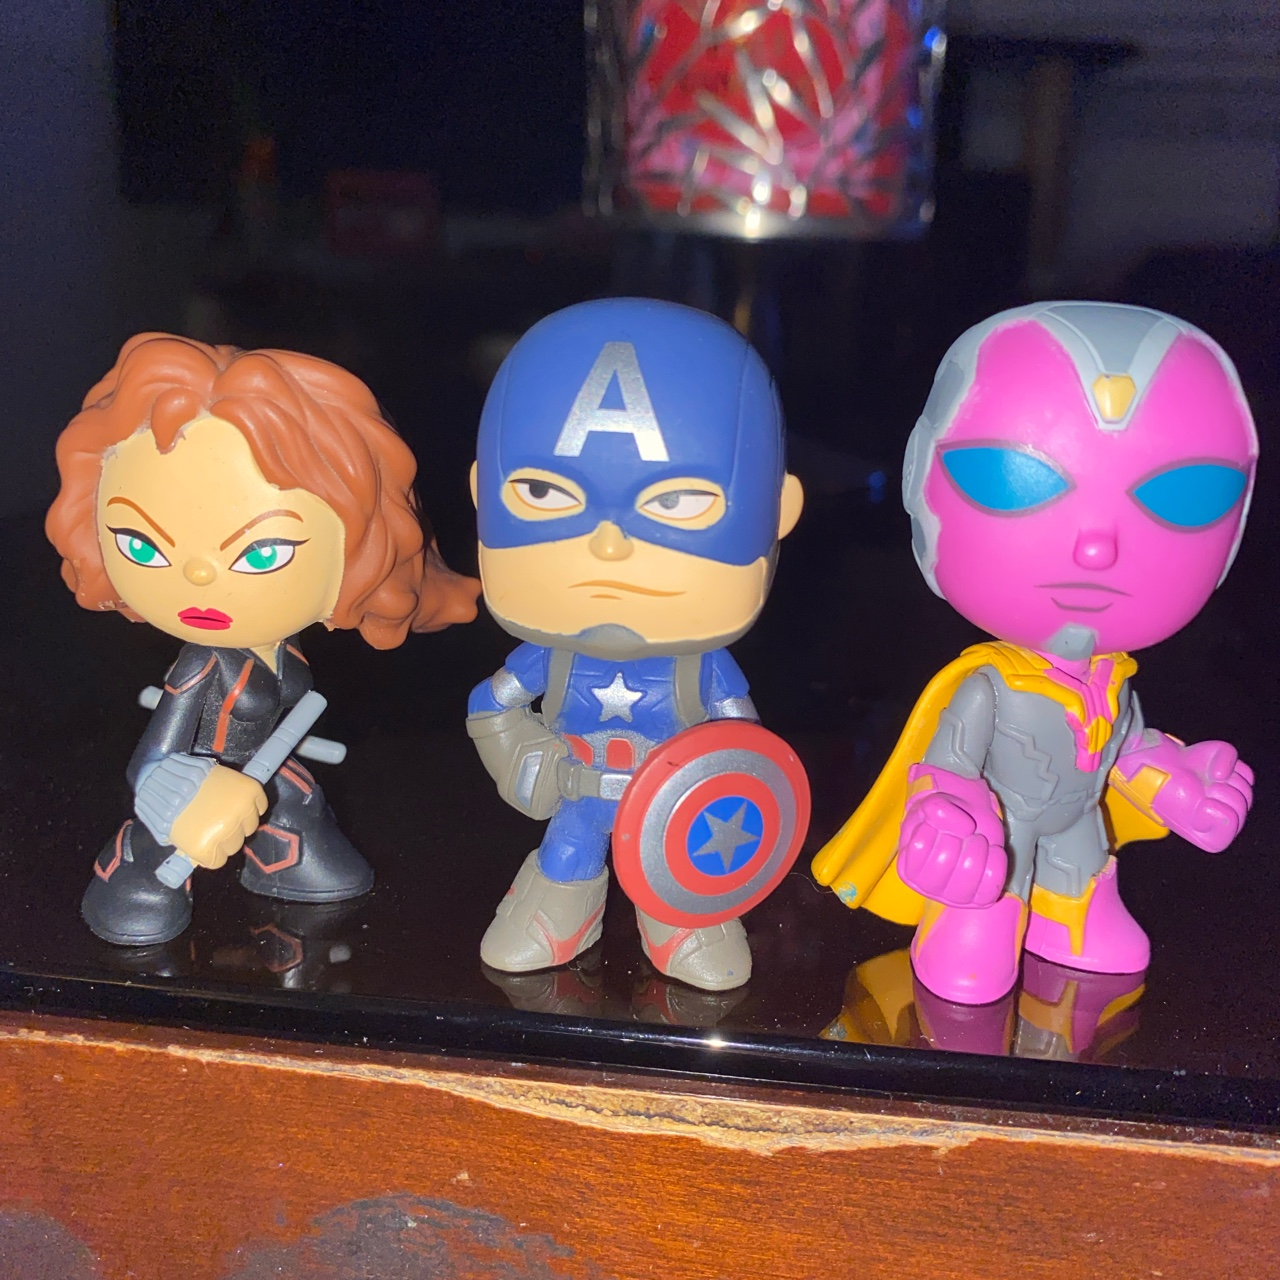 Product Image 1 - Marvel Funko small figurines. Price is